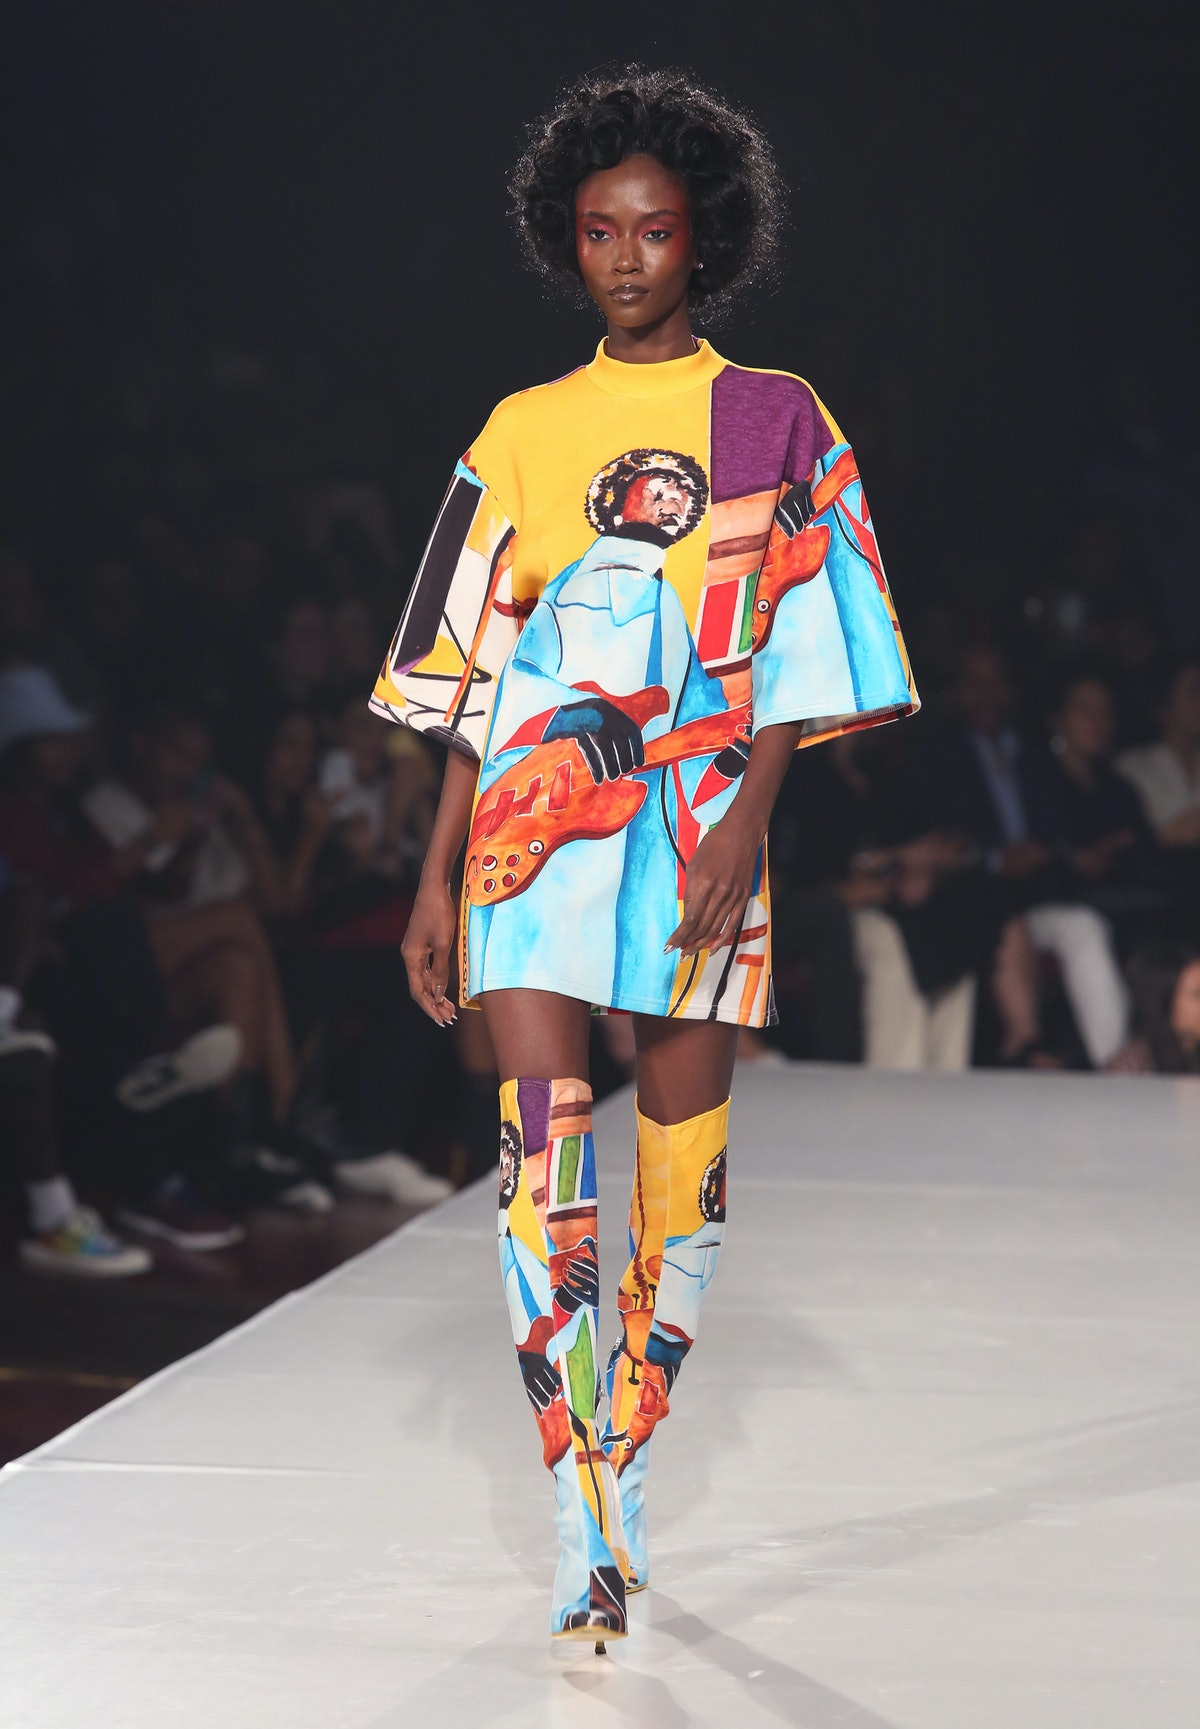 A model walks the runway during Sister The 3rd Collection by Pyer Moss as part of New York Fashion W...